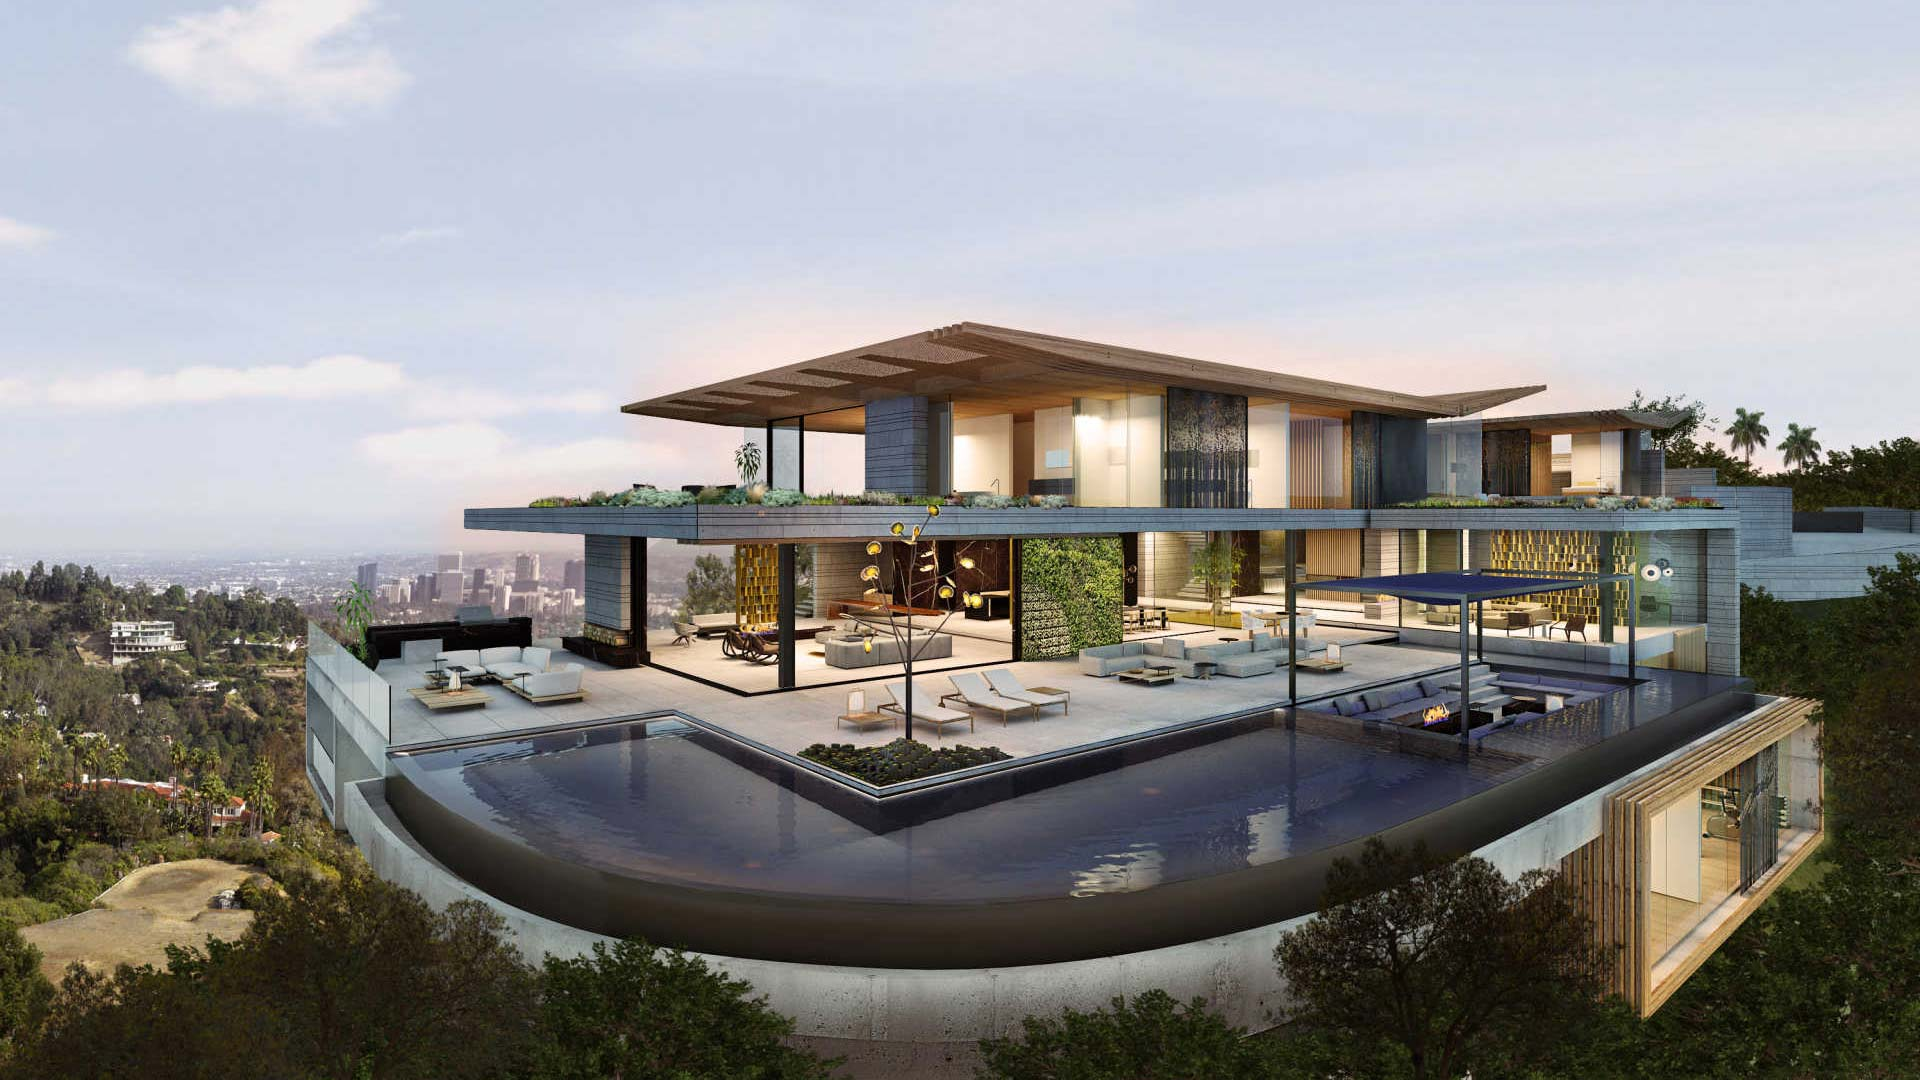 Luxury real estate Los Angeles: Lukinski's highlights - Plots up to $6.5 million!